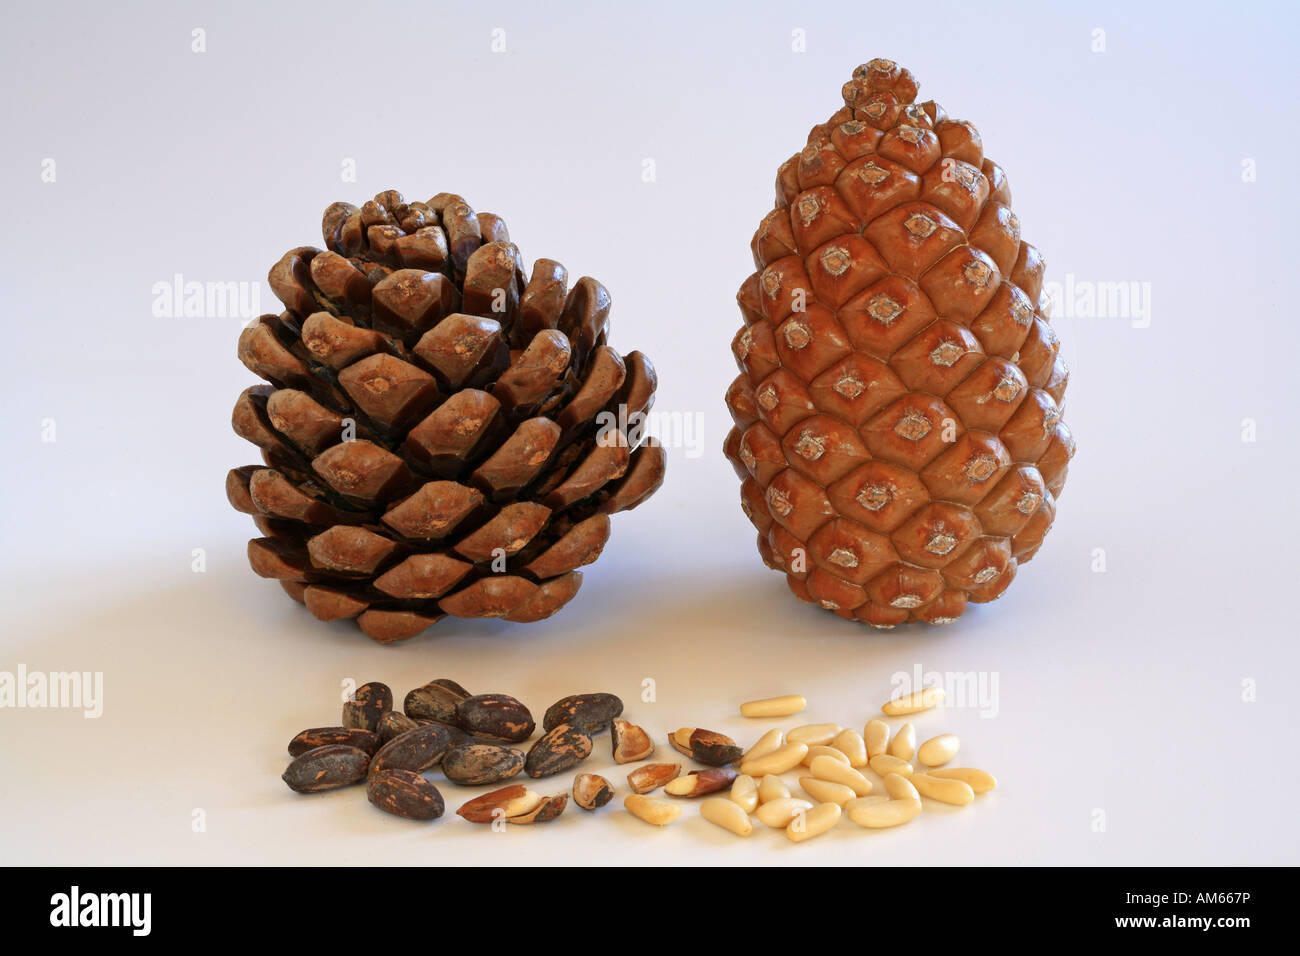 Closed and open pine cone, pine nuts with and without shell - Stock Image